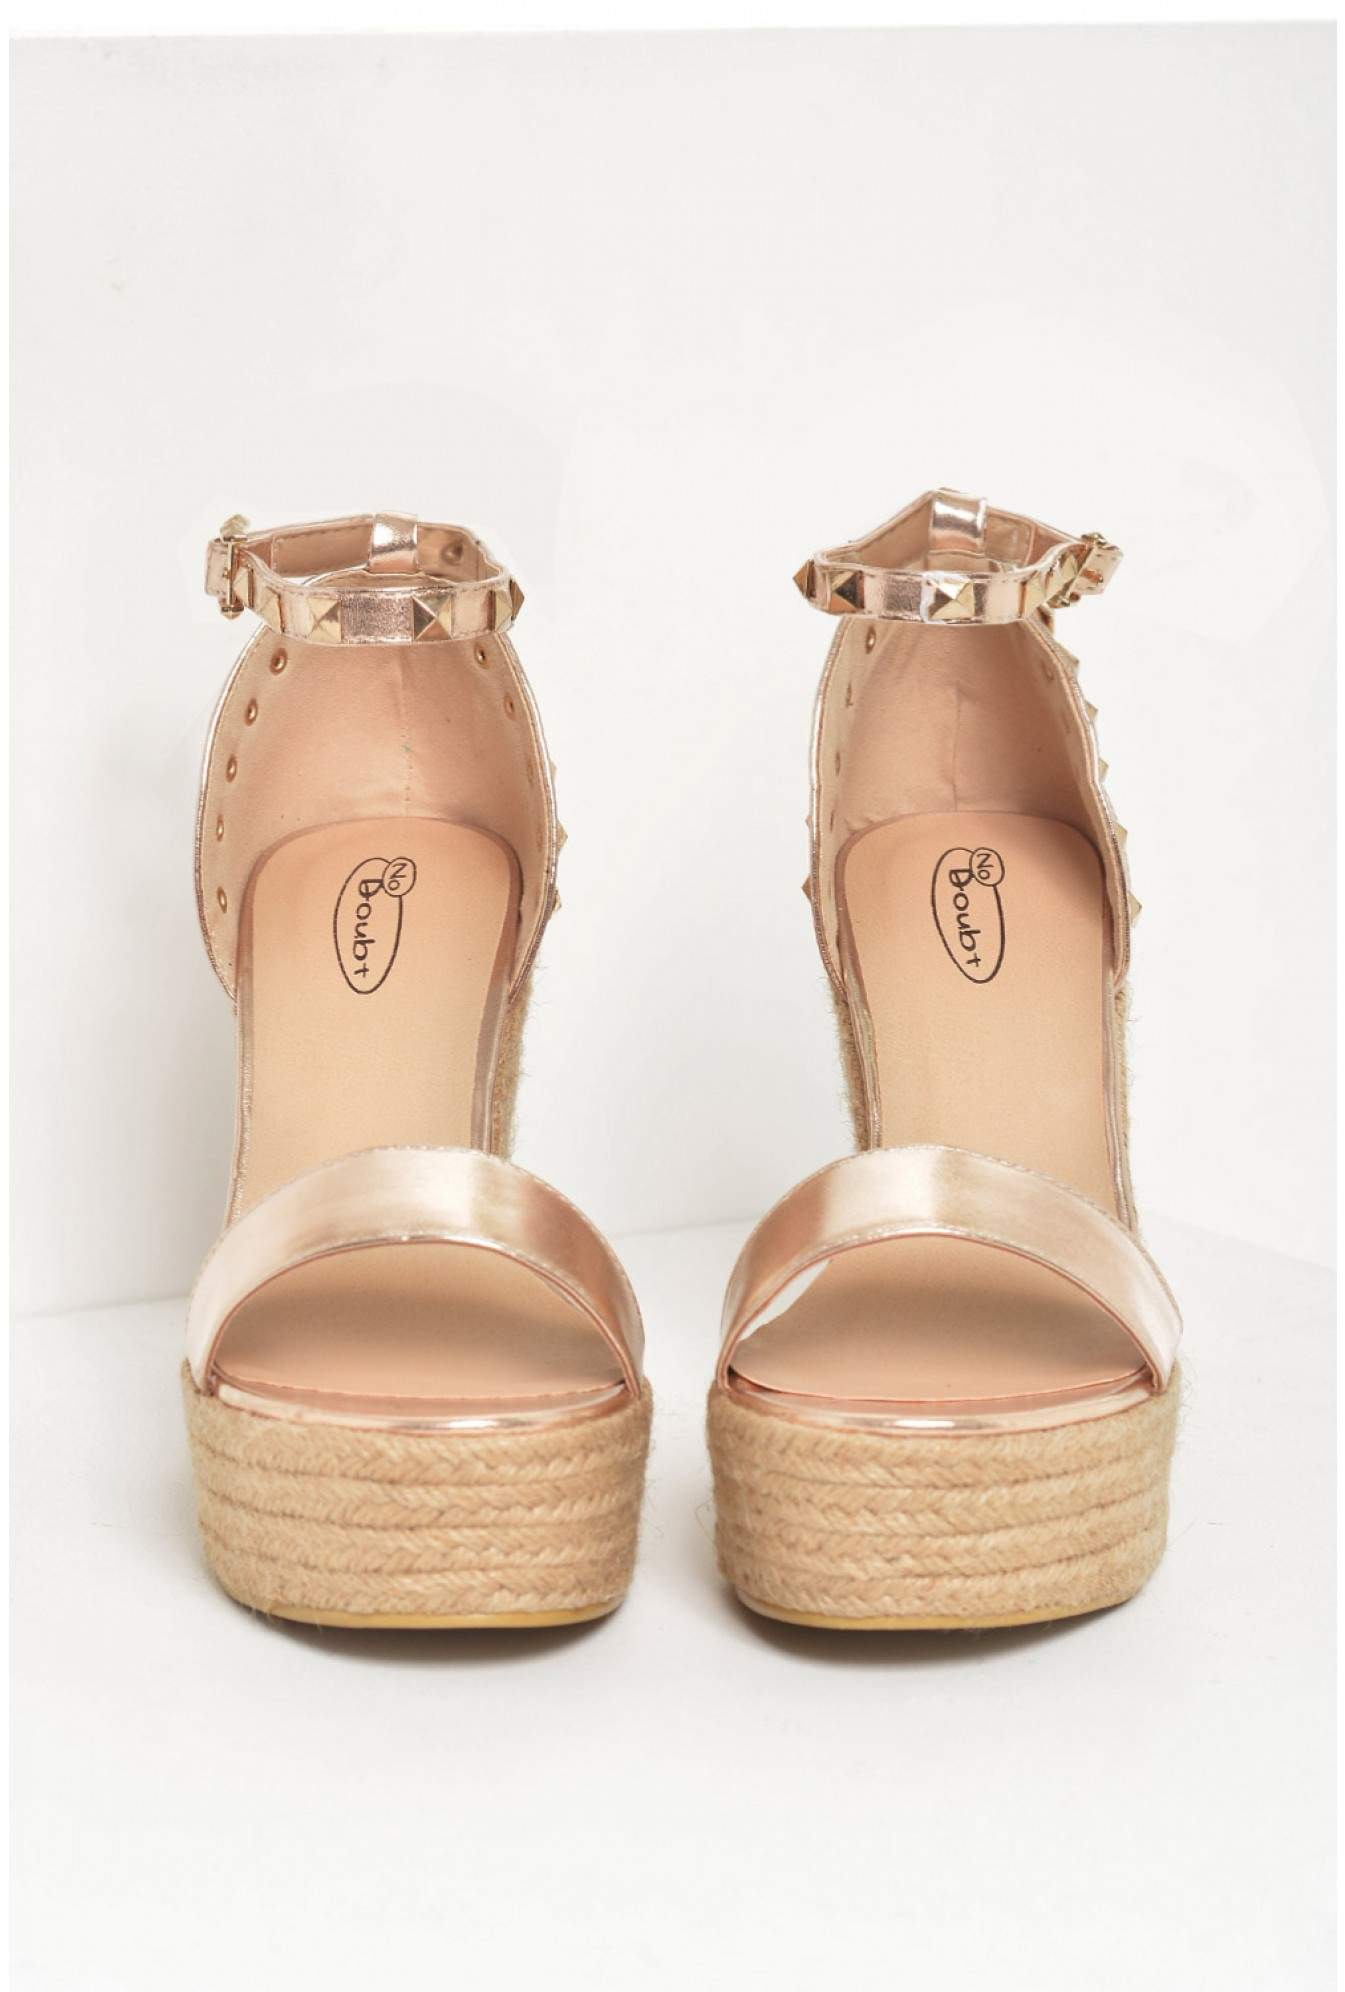 bbd1fd16aace More Views. Rachel Studded Espadrille Wedges in Rose Gold